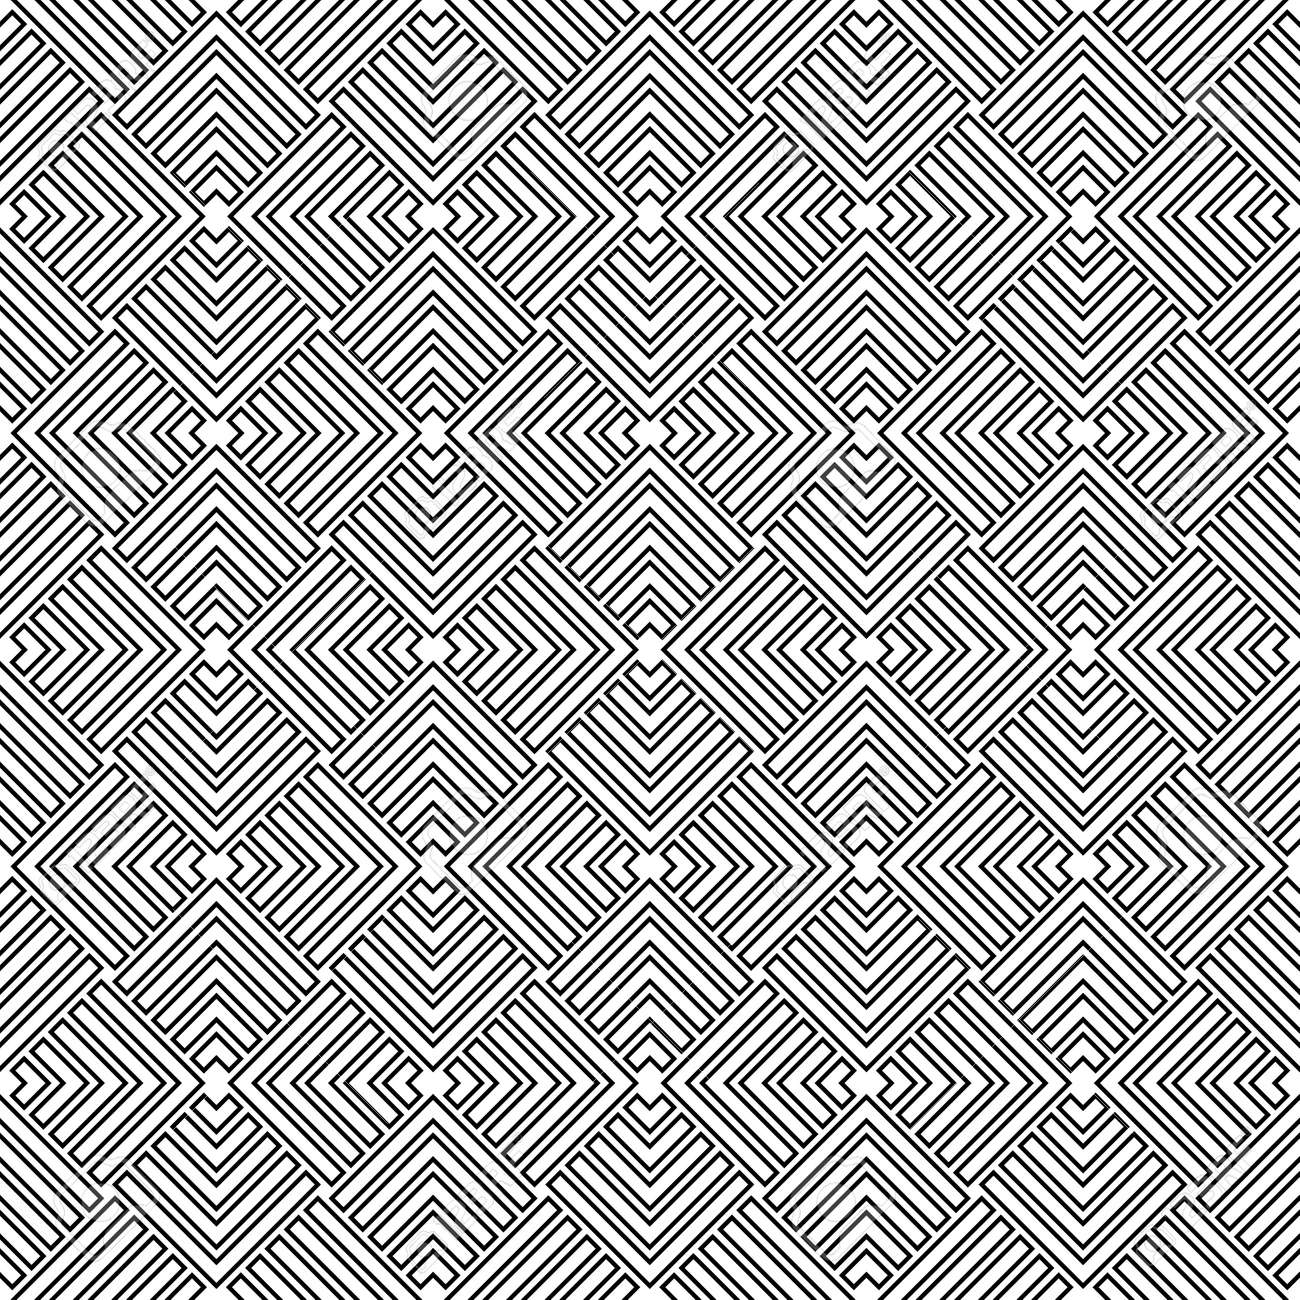 Seamless background for your designs. Modern black and white ornament. Geometric abstract pattern - 167155951